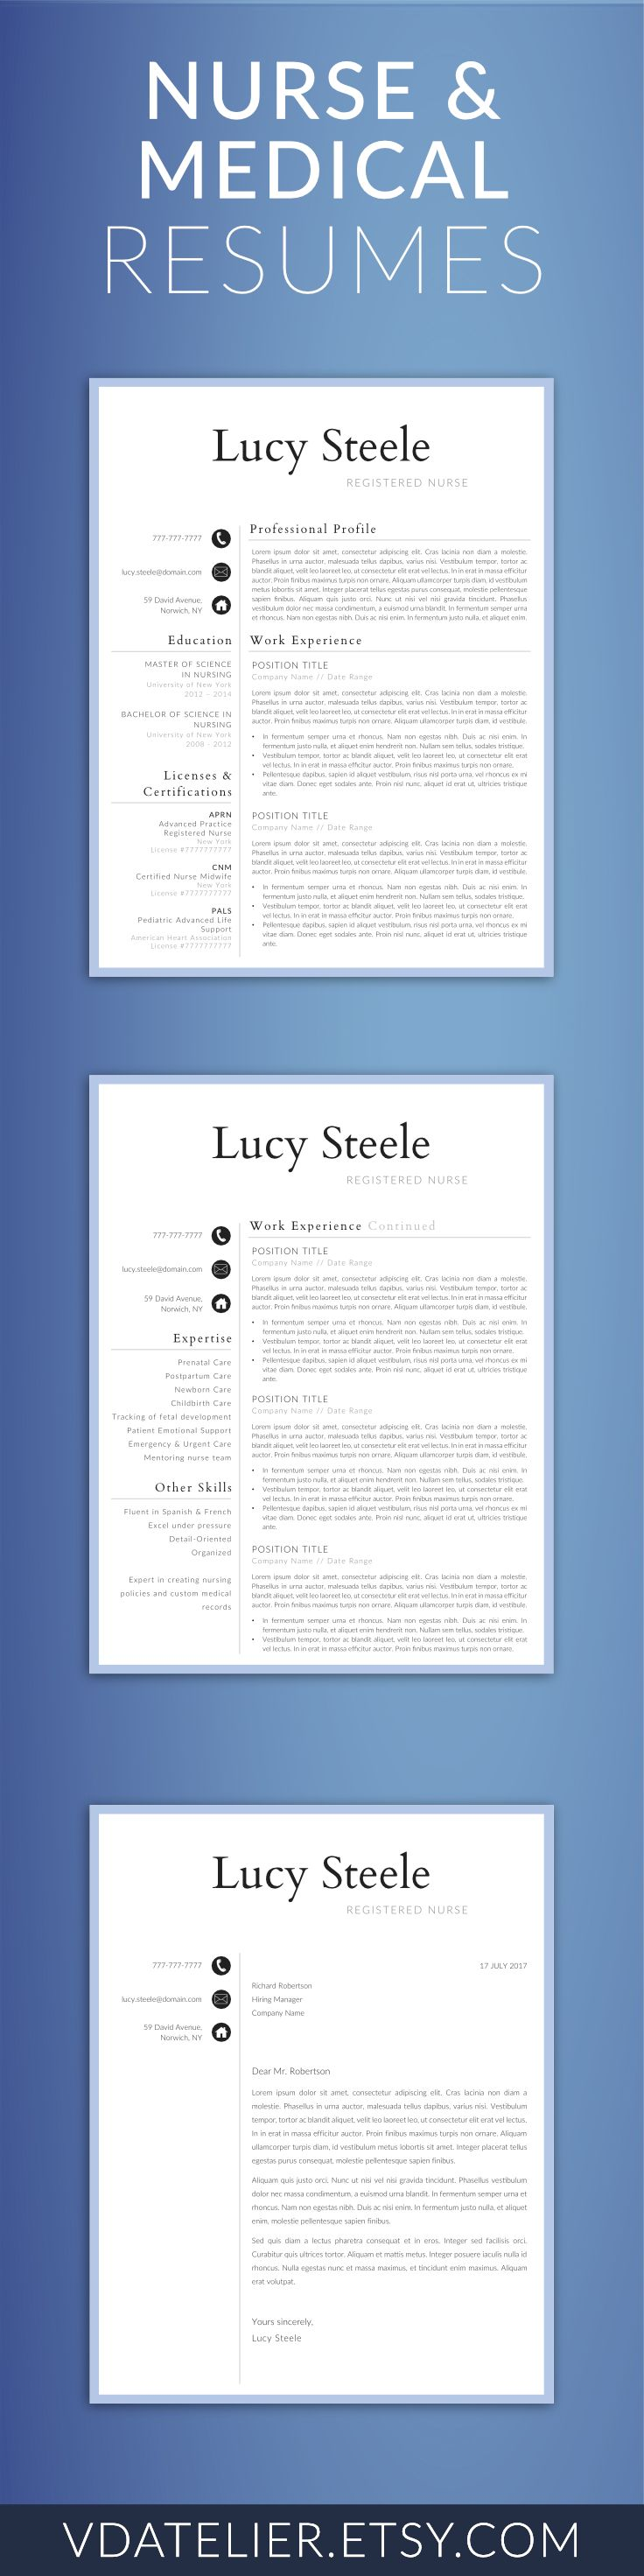 Cute 010 Editor Templates Thin 1 Page Resume Templates Regular 1 Year Experienced Java Resume 1.25 Button Template Old 10 Best Resume Services Fresh10 Business Card Template 25  Best Ideas About Rn Resume On Pinterest | Registered Nurse ..